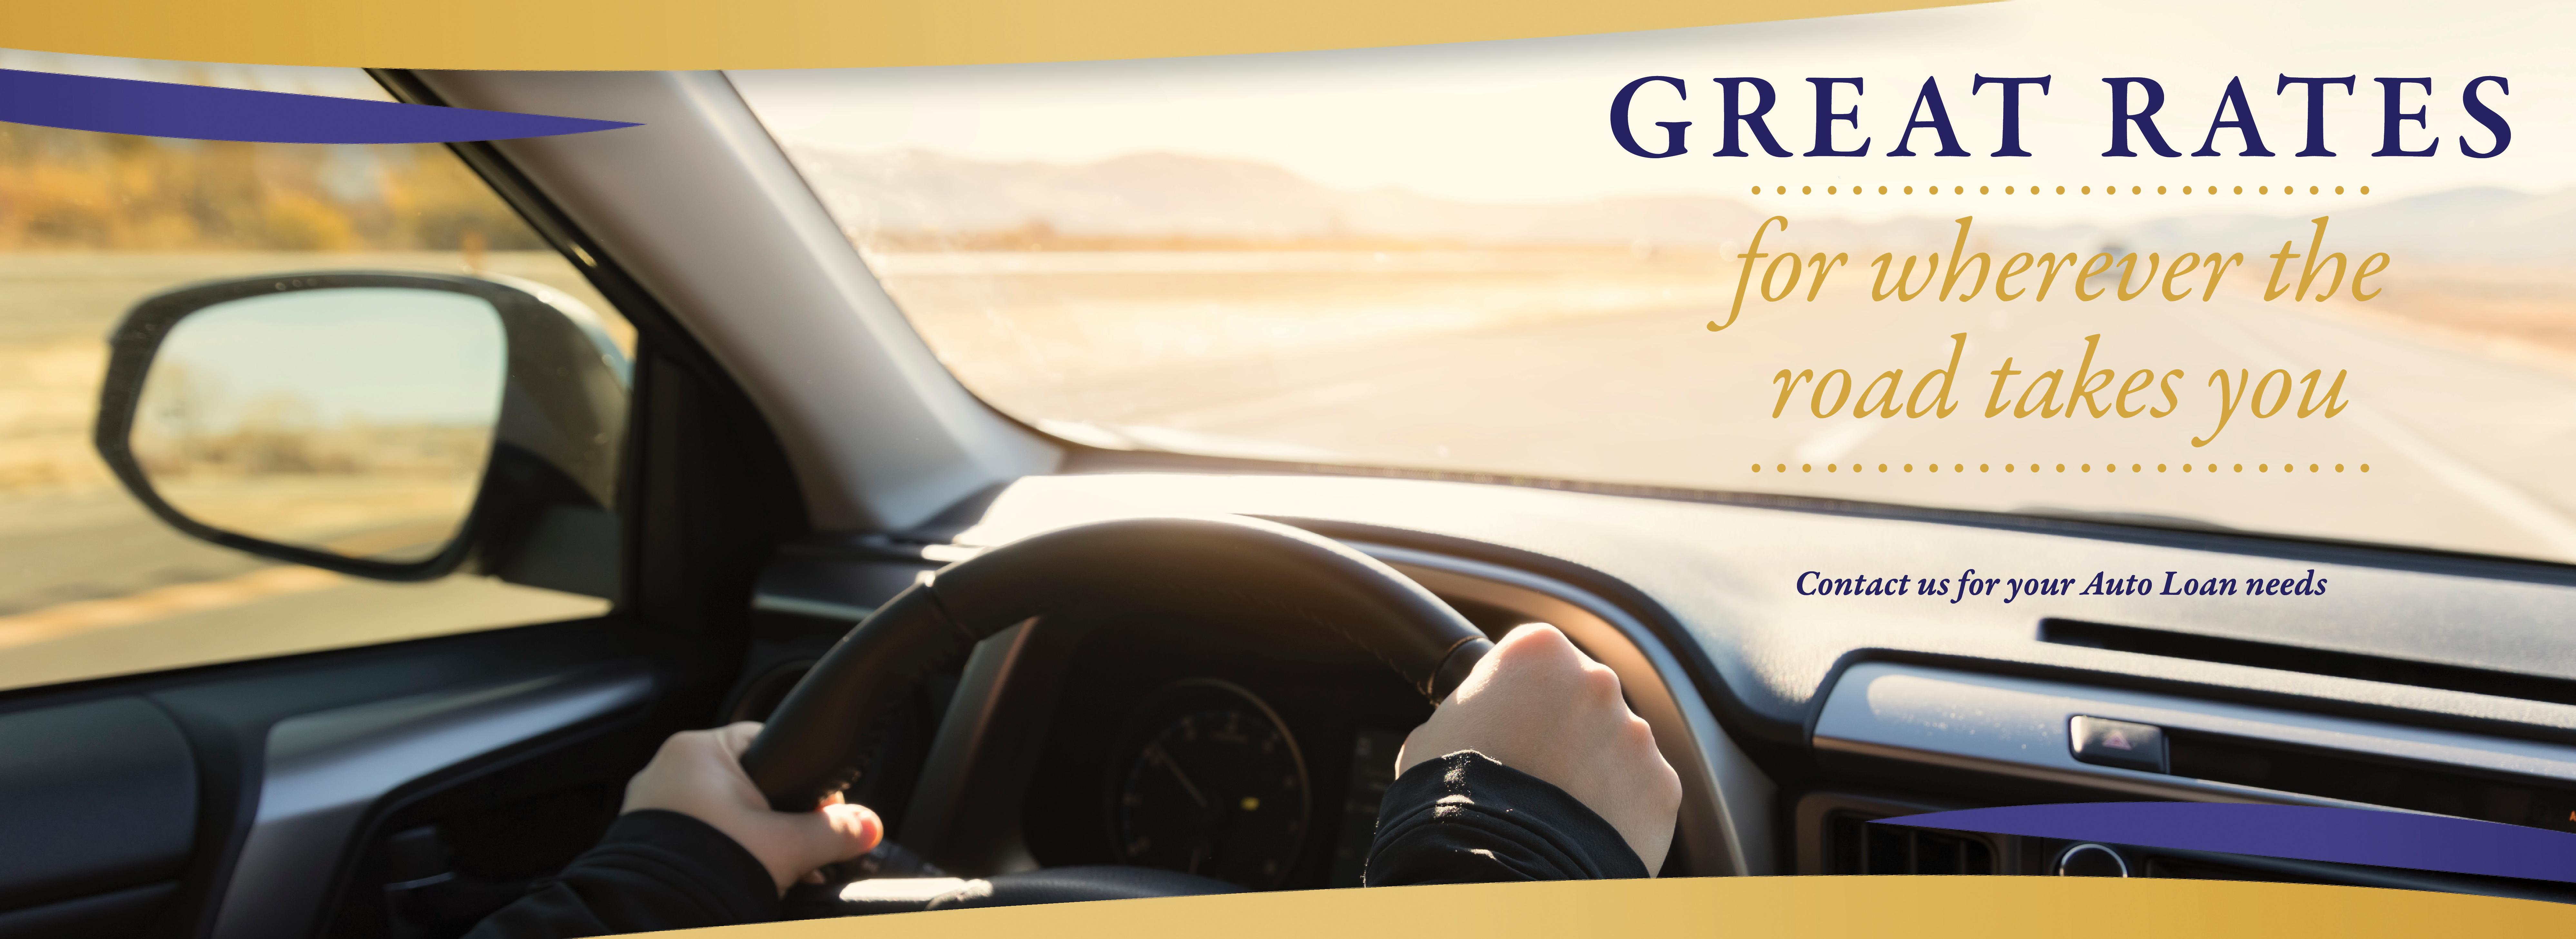 Great Rates... for wherever the road takes you.  Contact us for your Auto Loan needs.  Image of interior of a vehicle of someone driving down a highway.